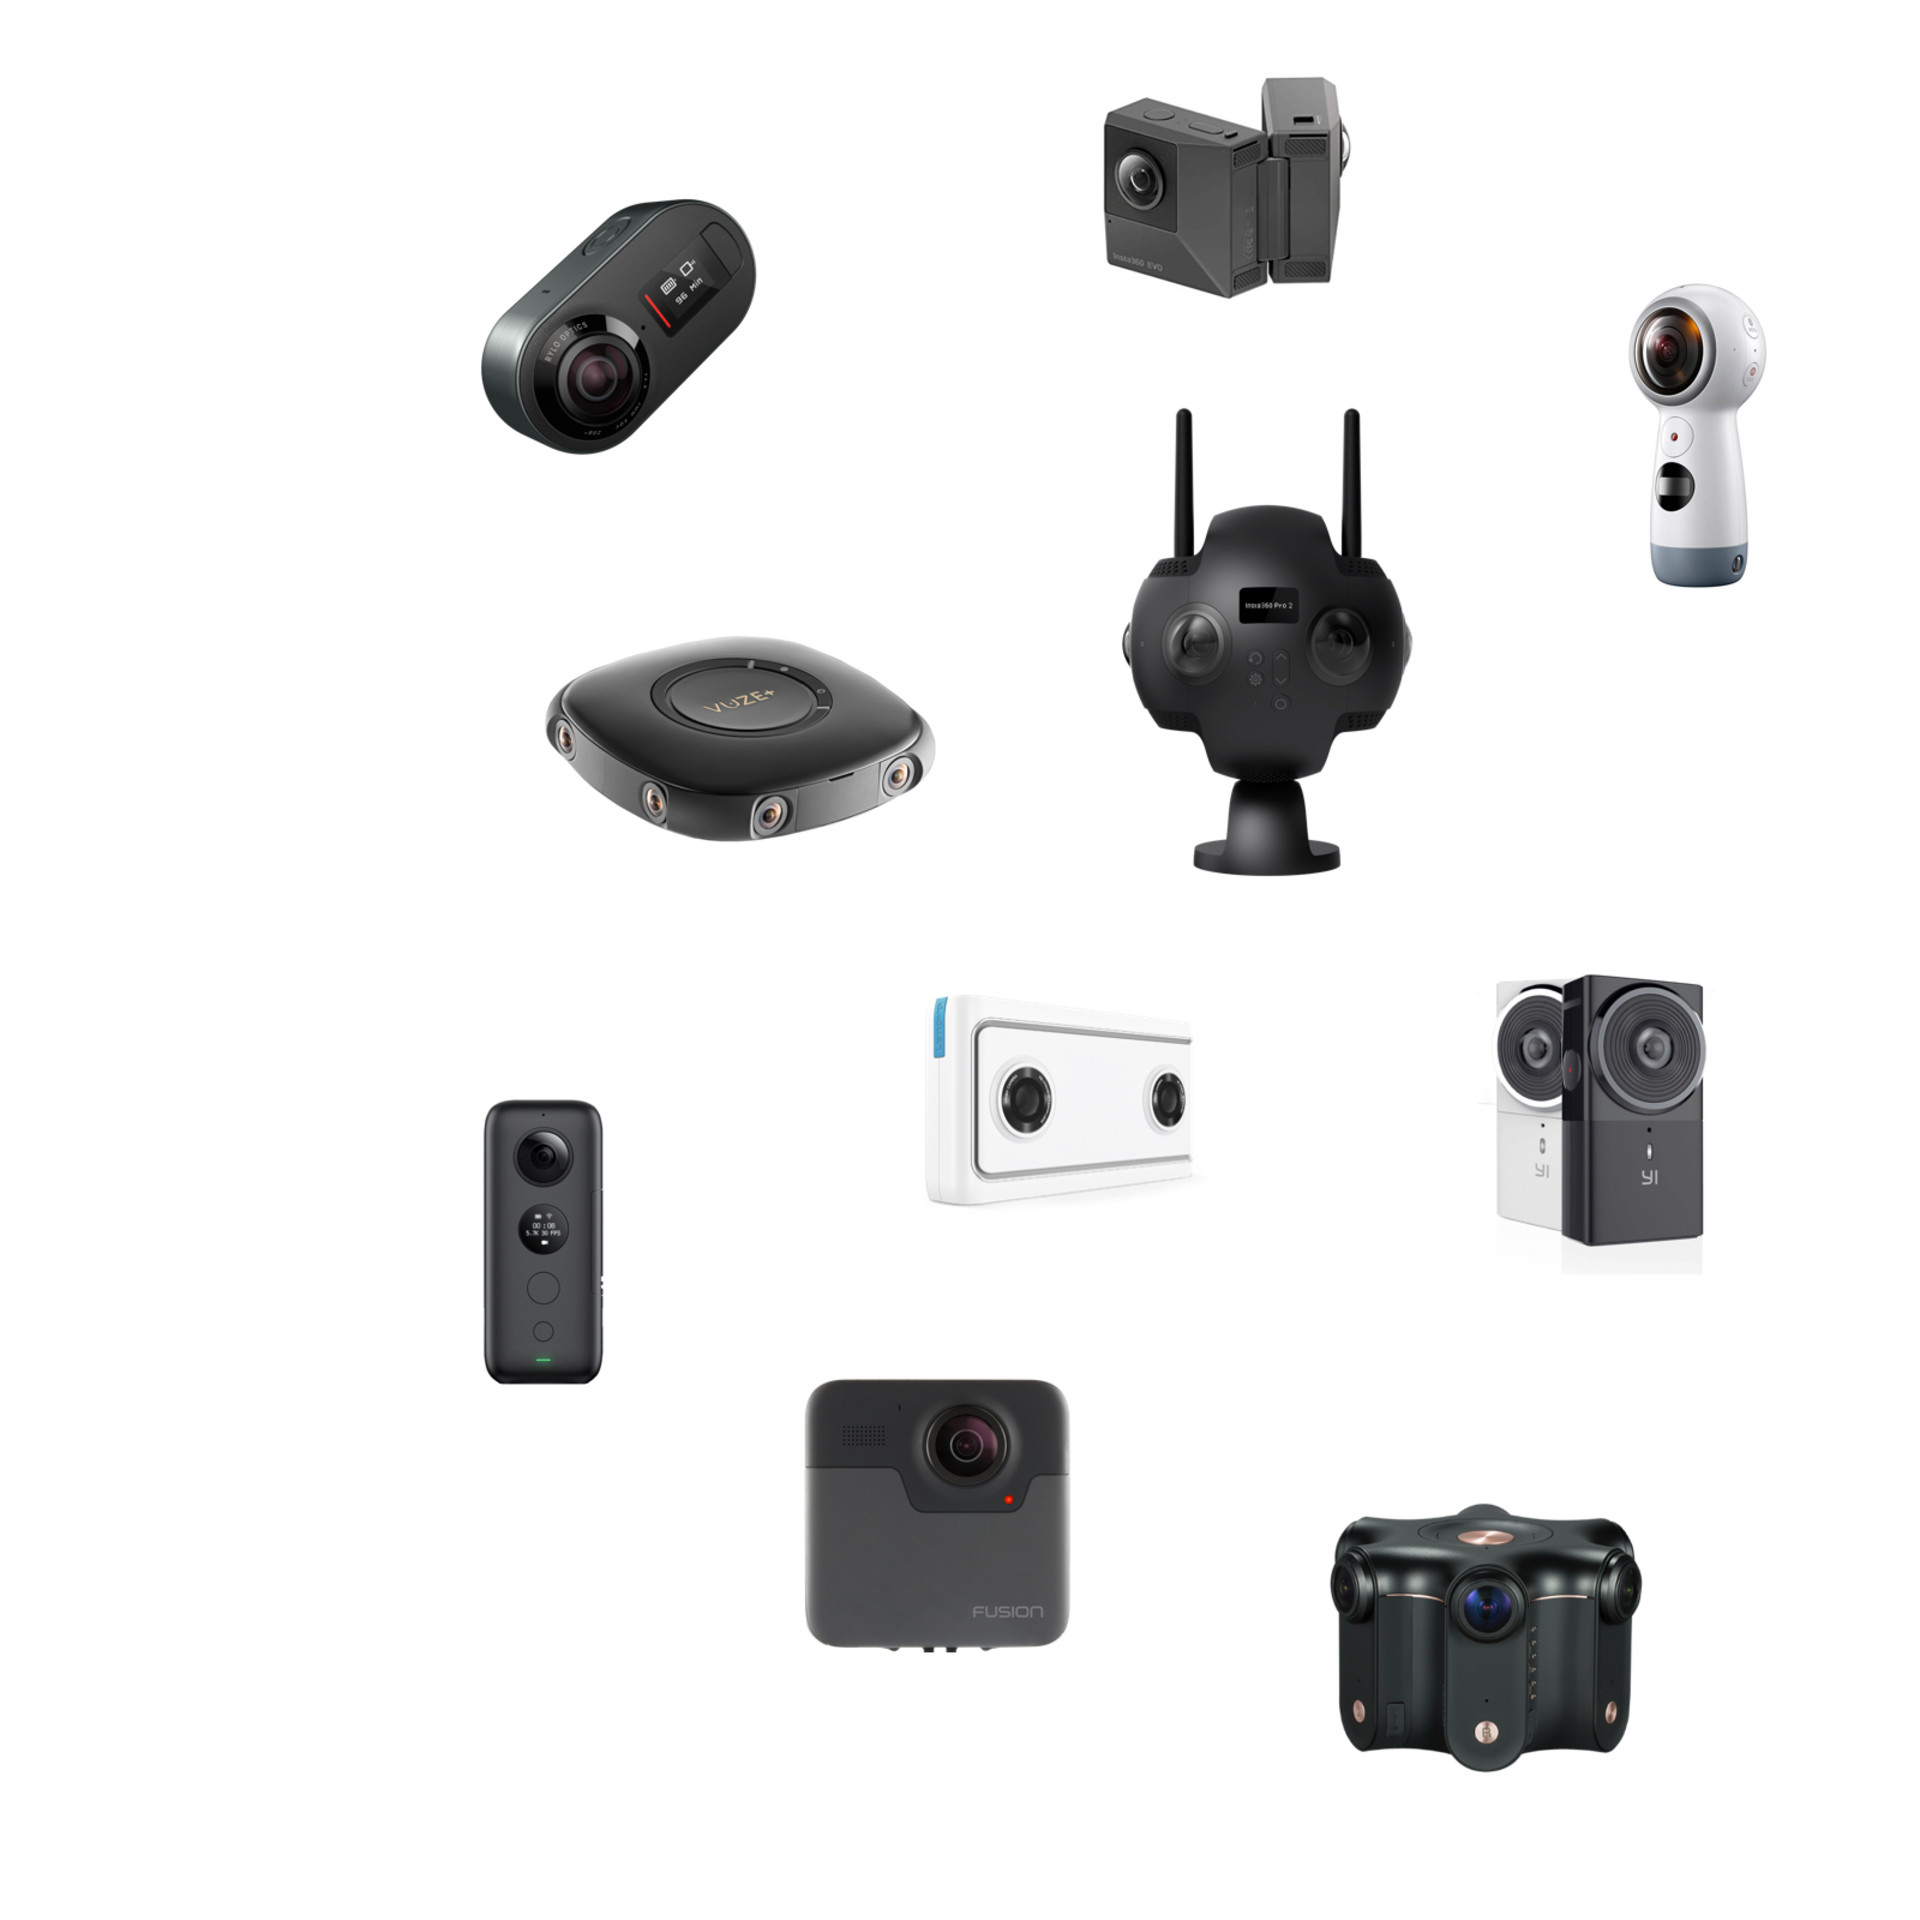 Most VR Cameras supported